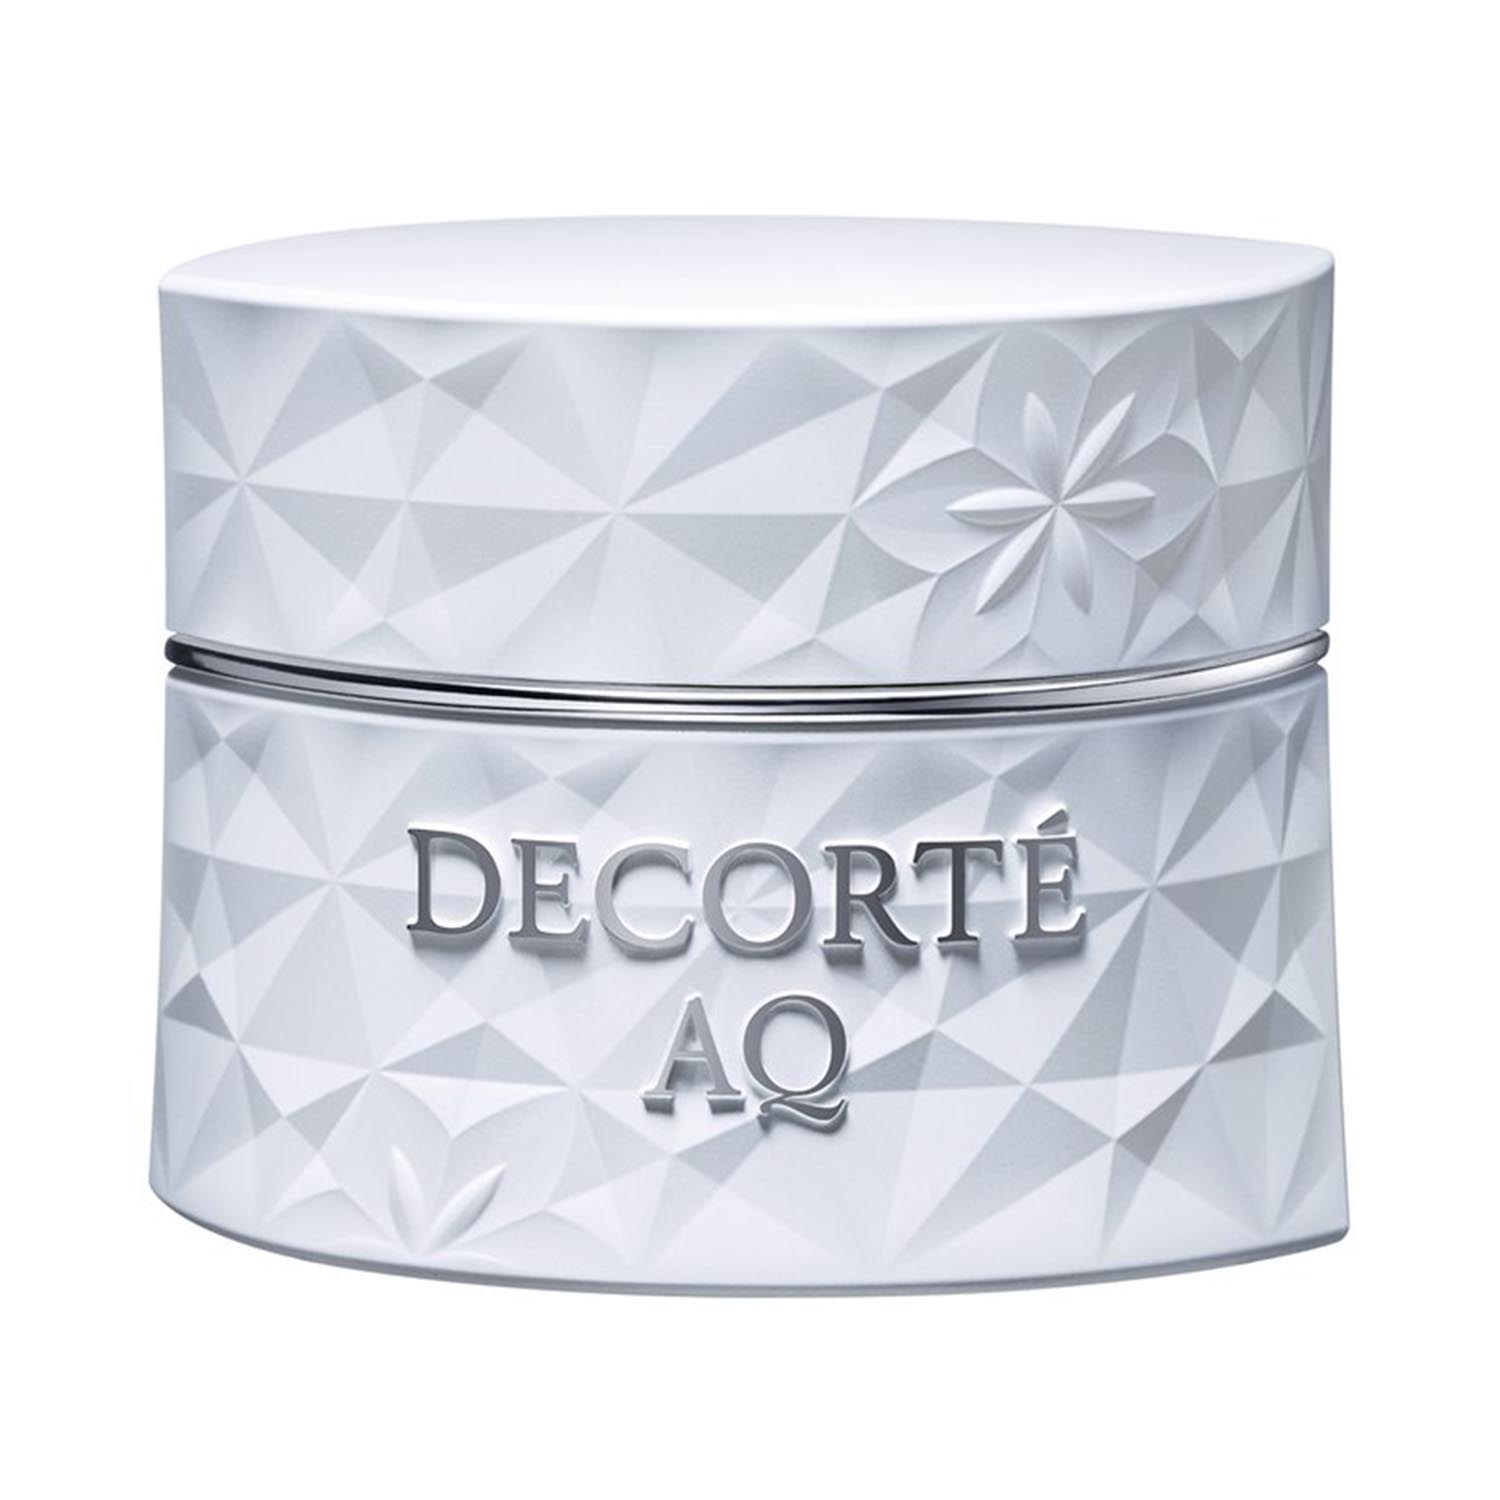 Decorte aq brightening cream 25ml